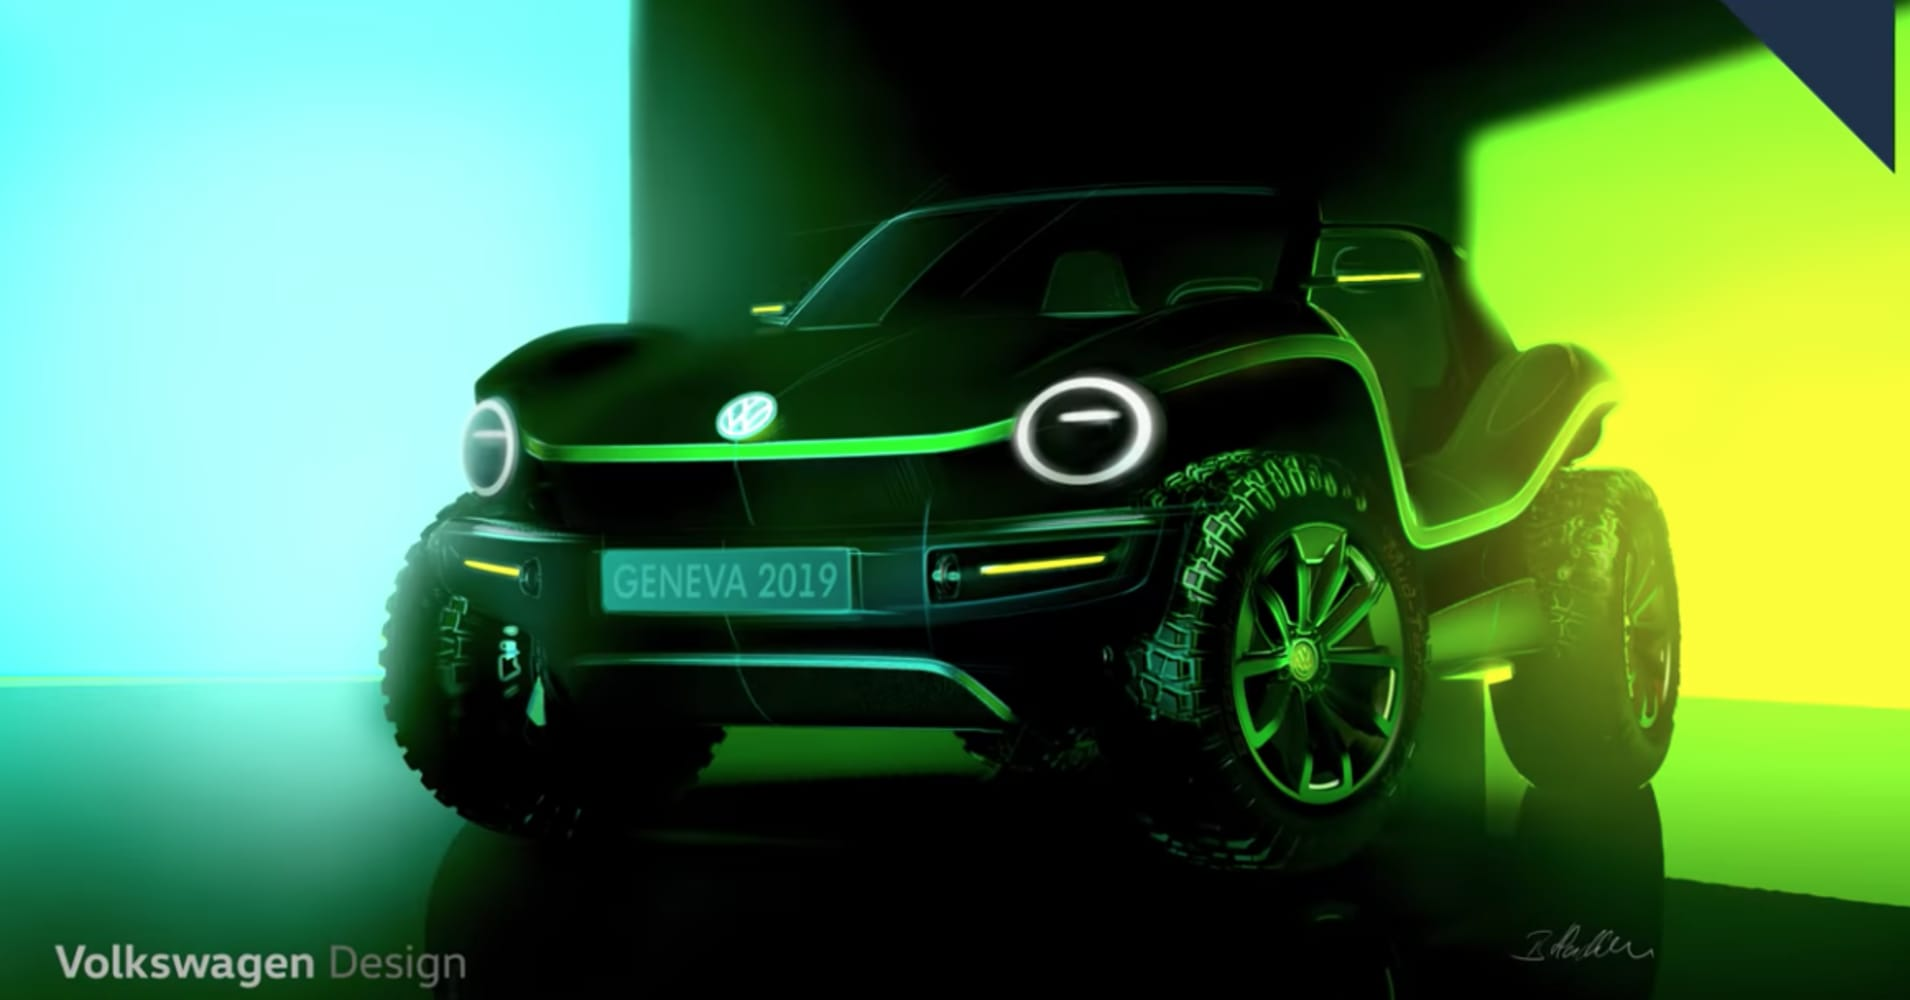 VW revives the dune buggy with an electric concept vehicle that brings the past into the future